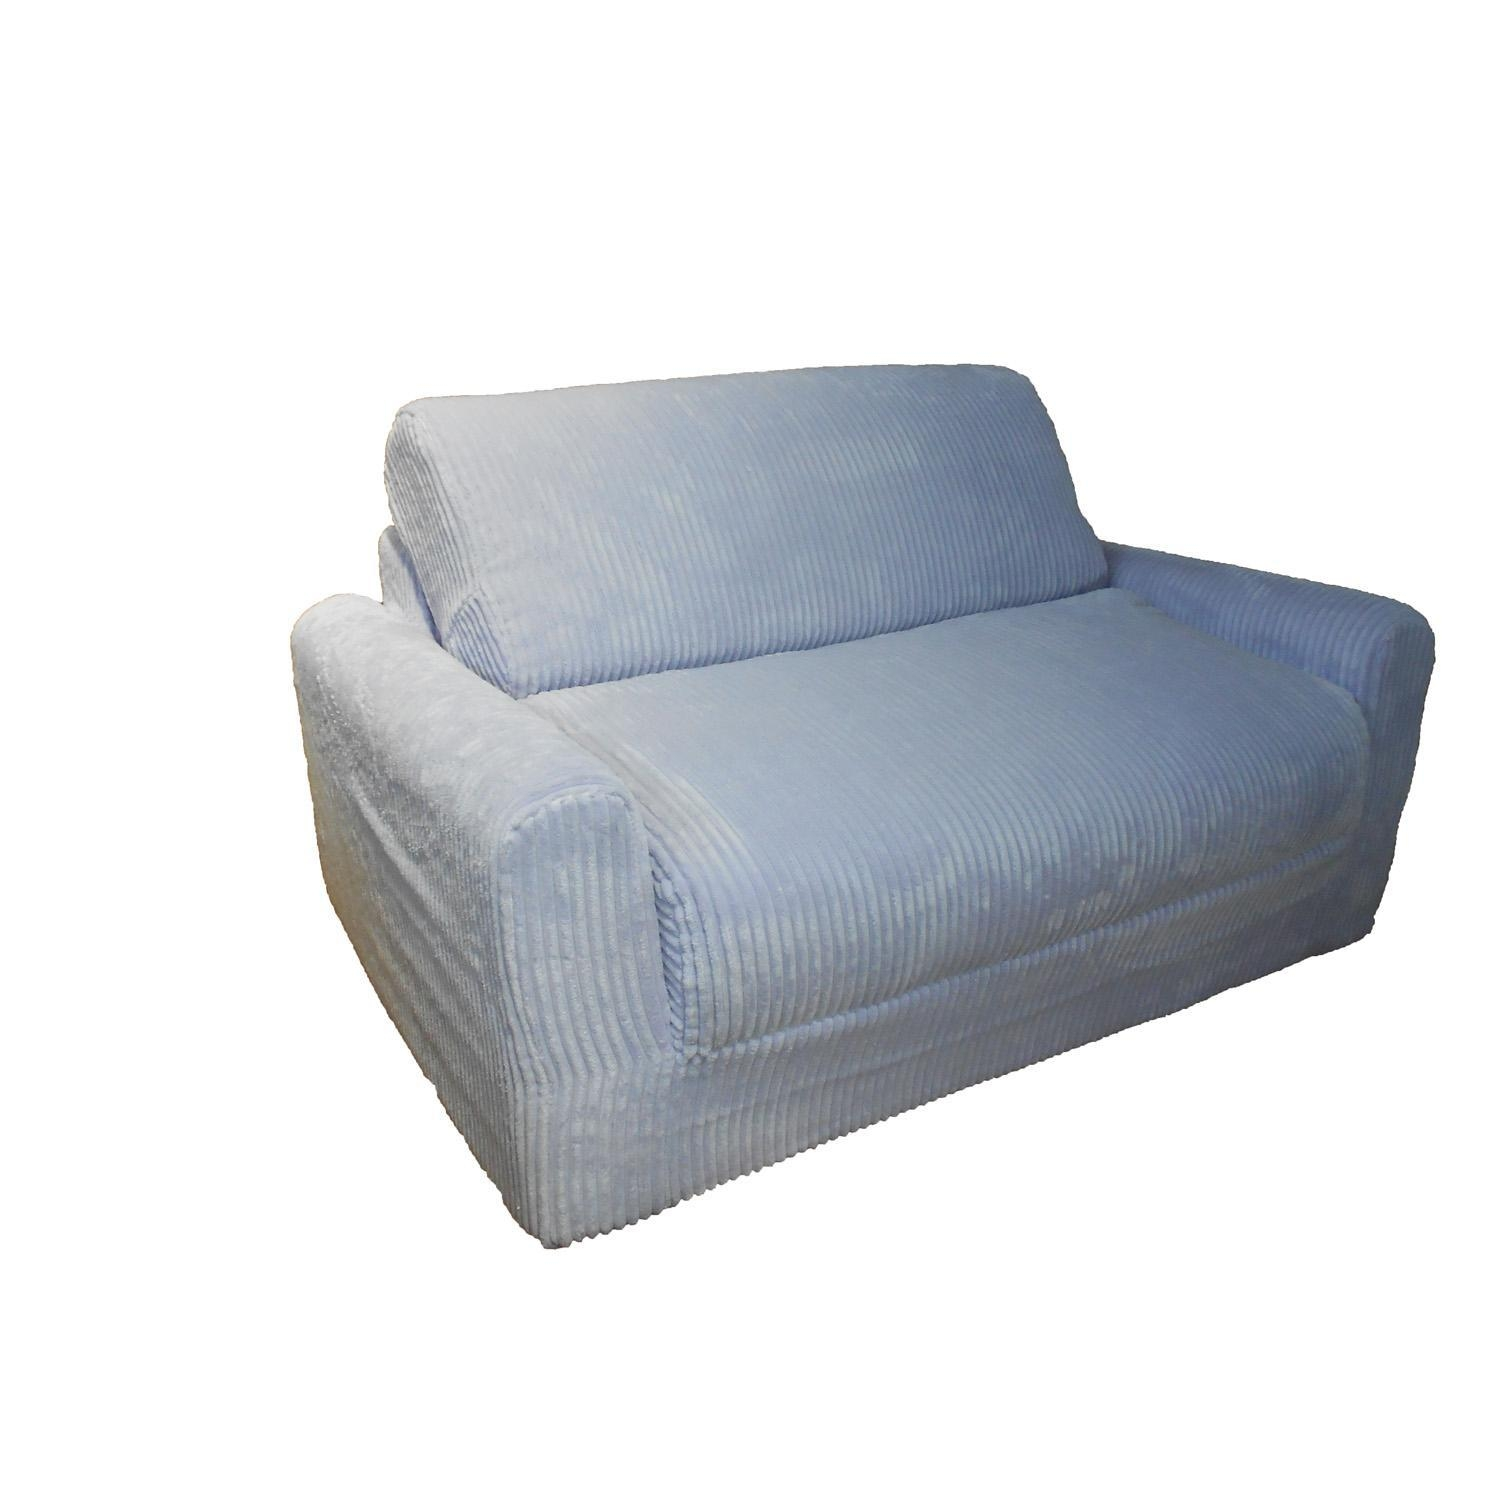 sofa for children beds on gumtree glasgow 20 best ideas childrens chairs